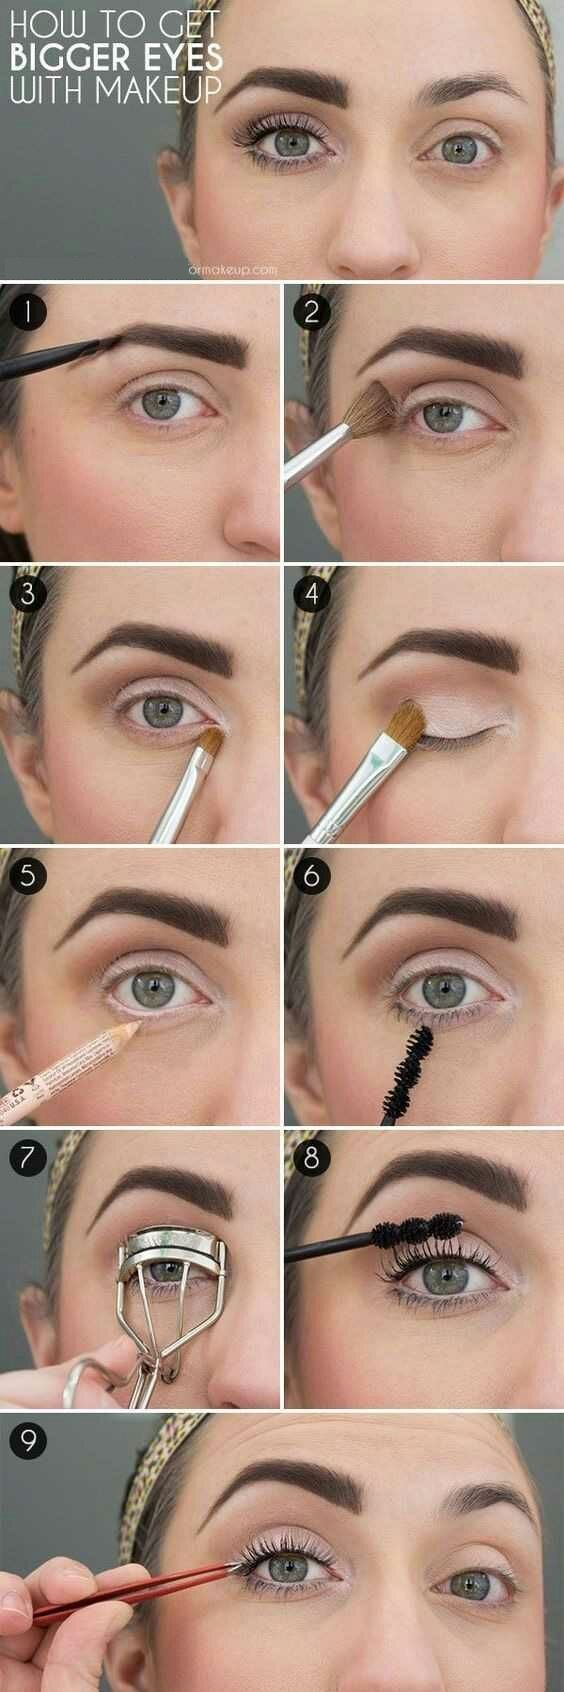 Get Bigger Eyes With Makeup How To Make Eyes Bigger Without Makeup